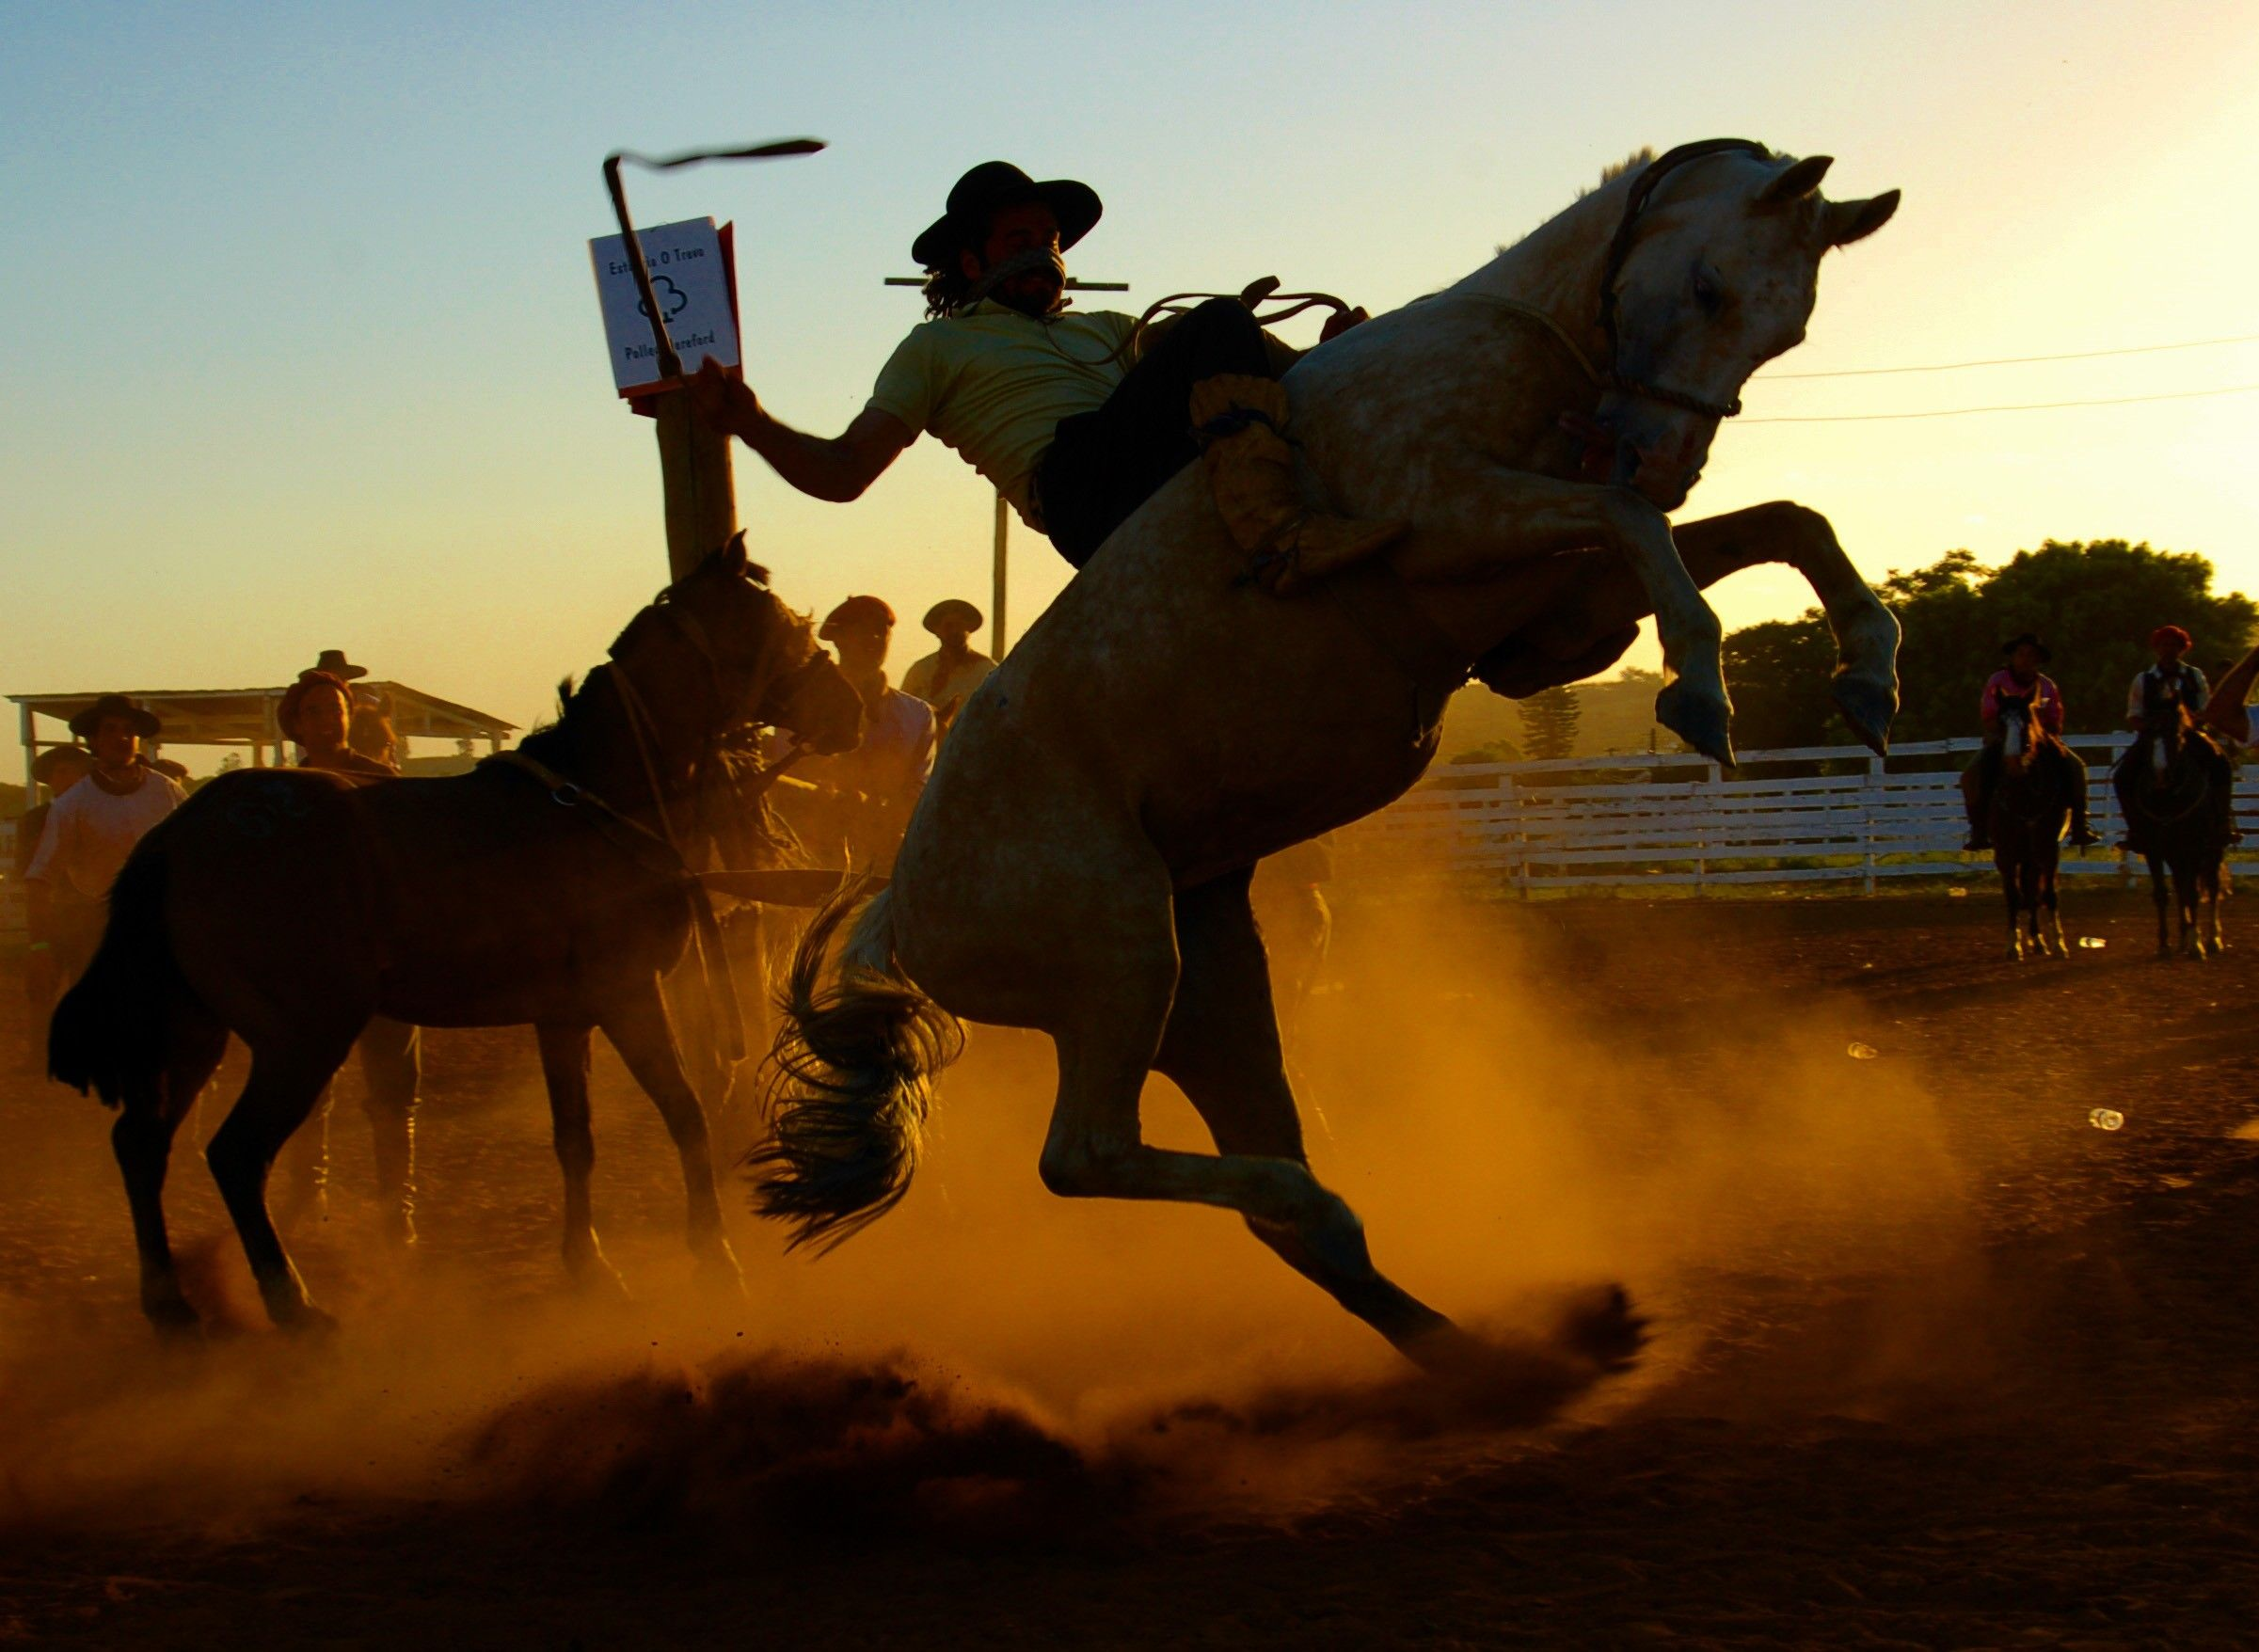 Rodeo Computer Wallpapers Desktop Backgrounds 2401x1756 Id 431119 Cowgirl And Horse Rodeo Rodeo Life